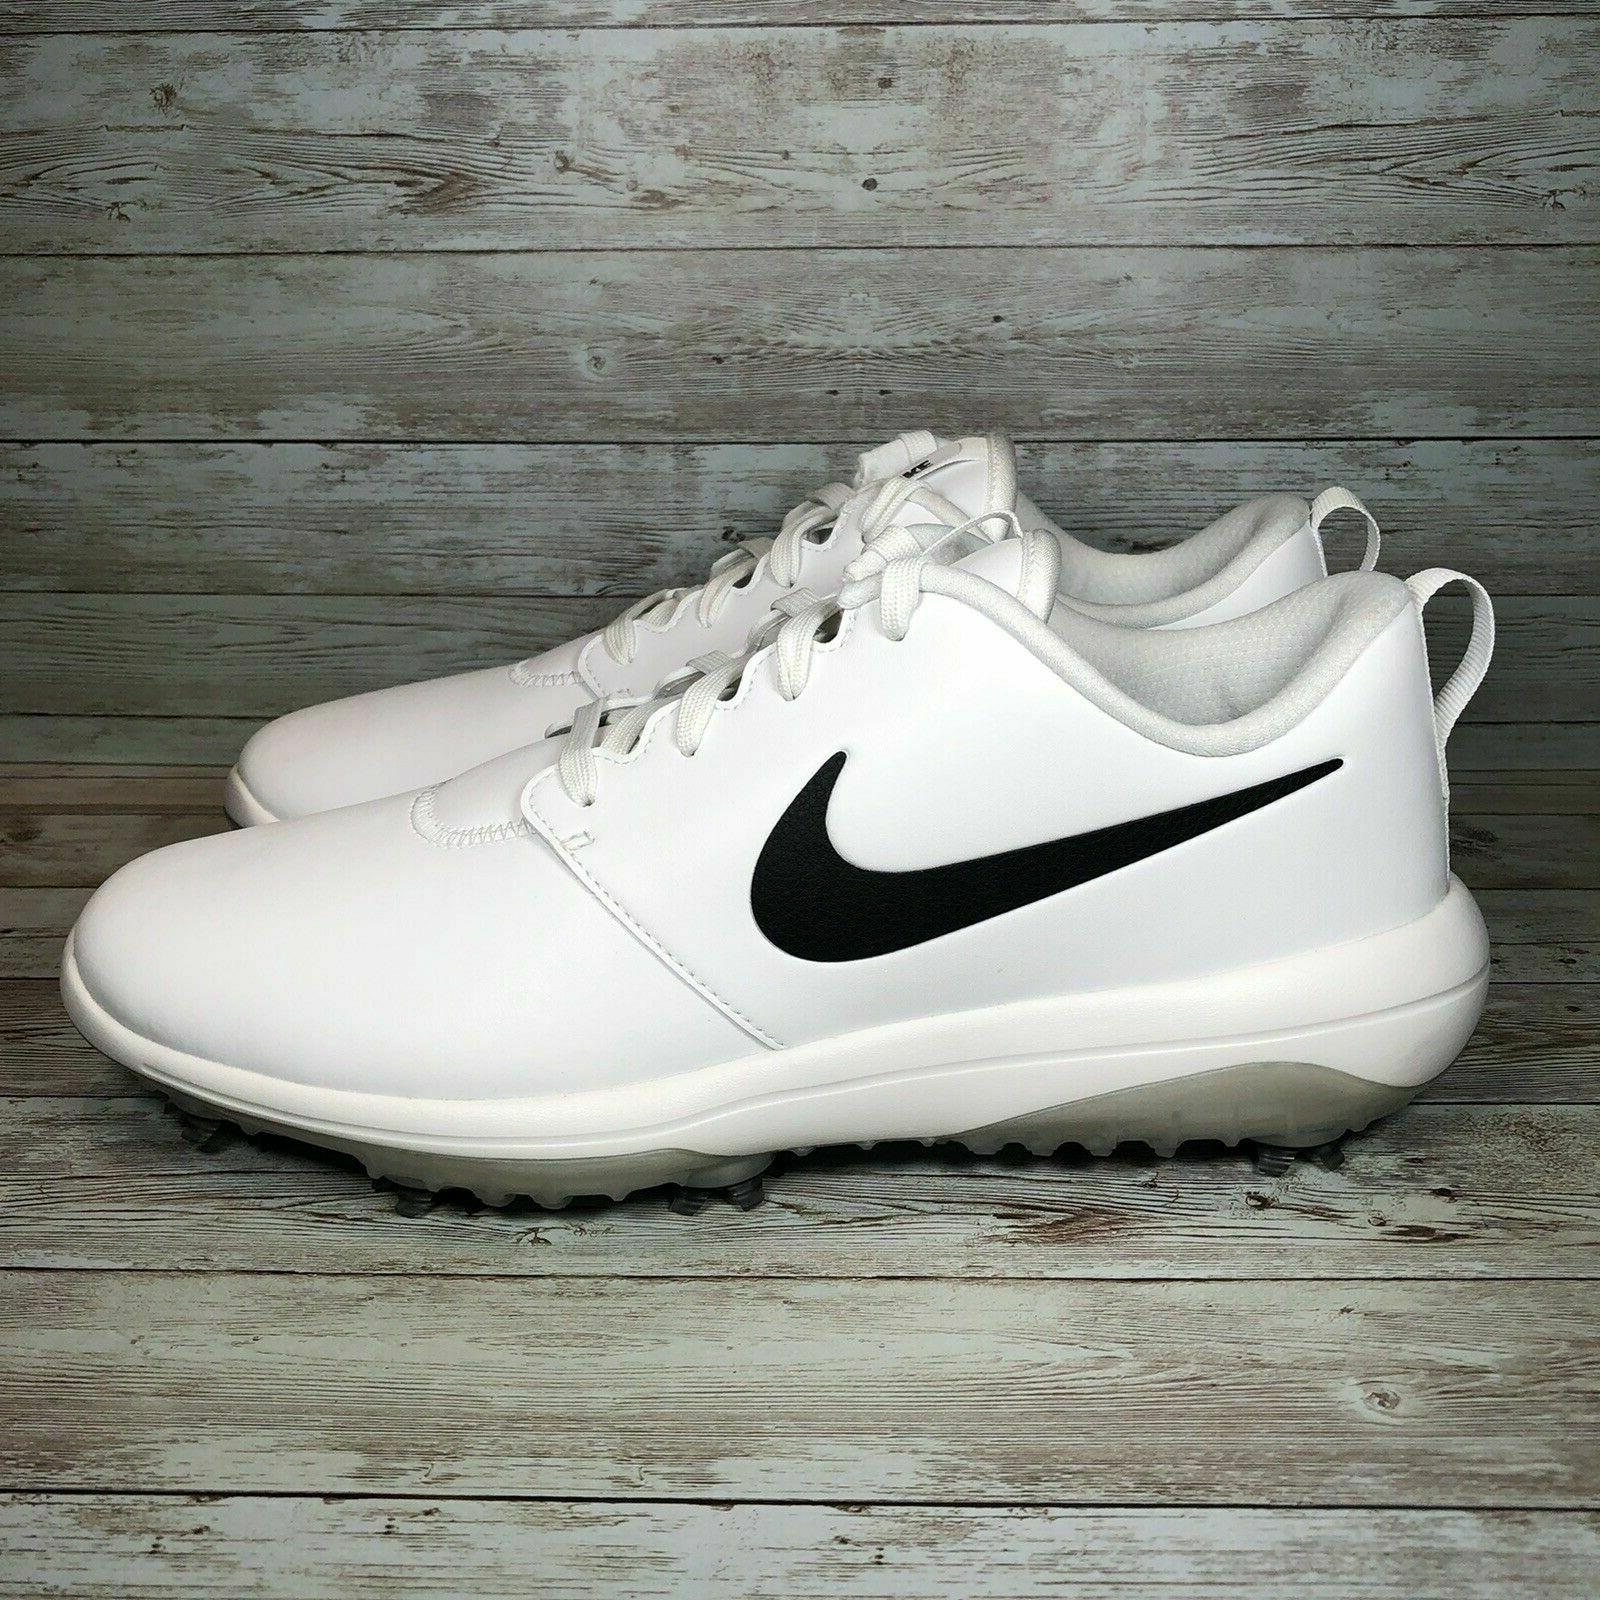 NIKE ROSHE G TOUR PROMO LIMITED GOLF SHOES MENS SIZE 13 WHIT